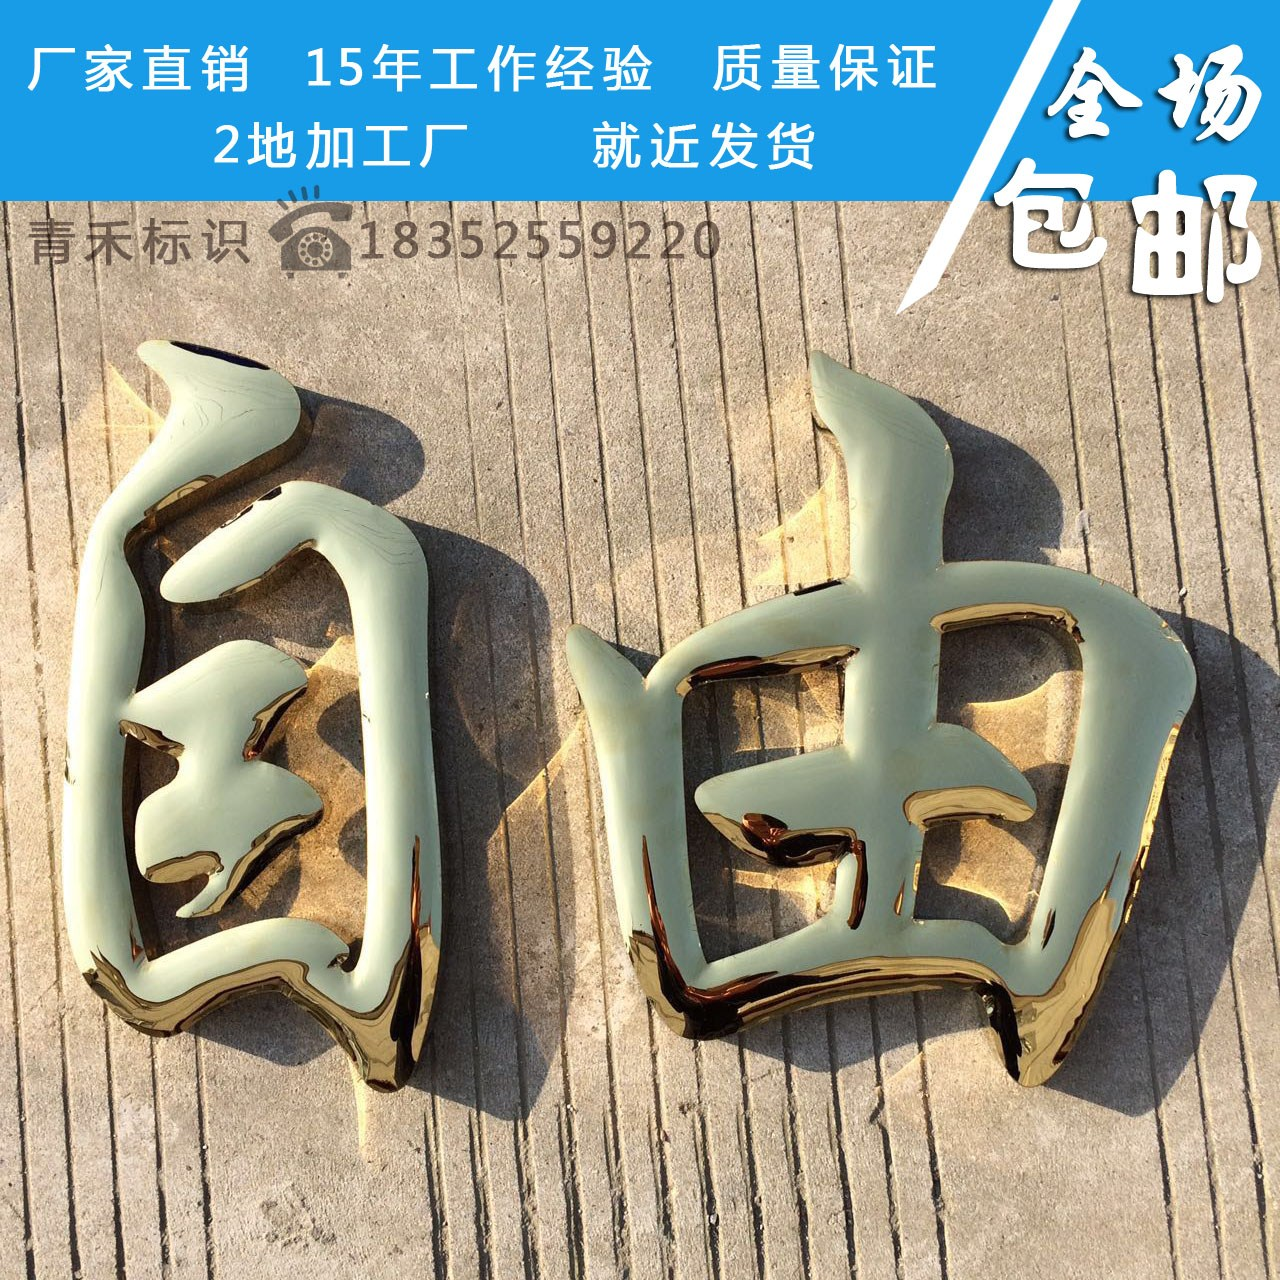 Fine brushed stainless steel word word Tongzi signs custom custom plane antique door made of titanium